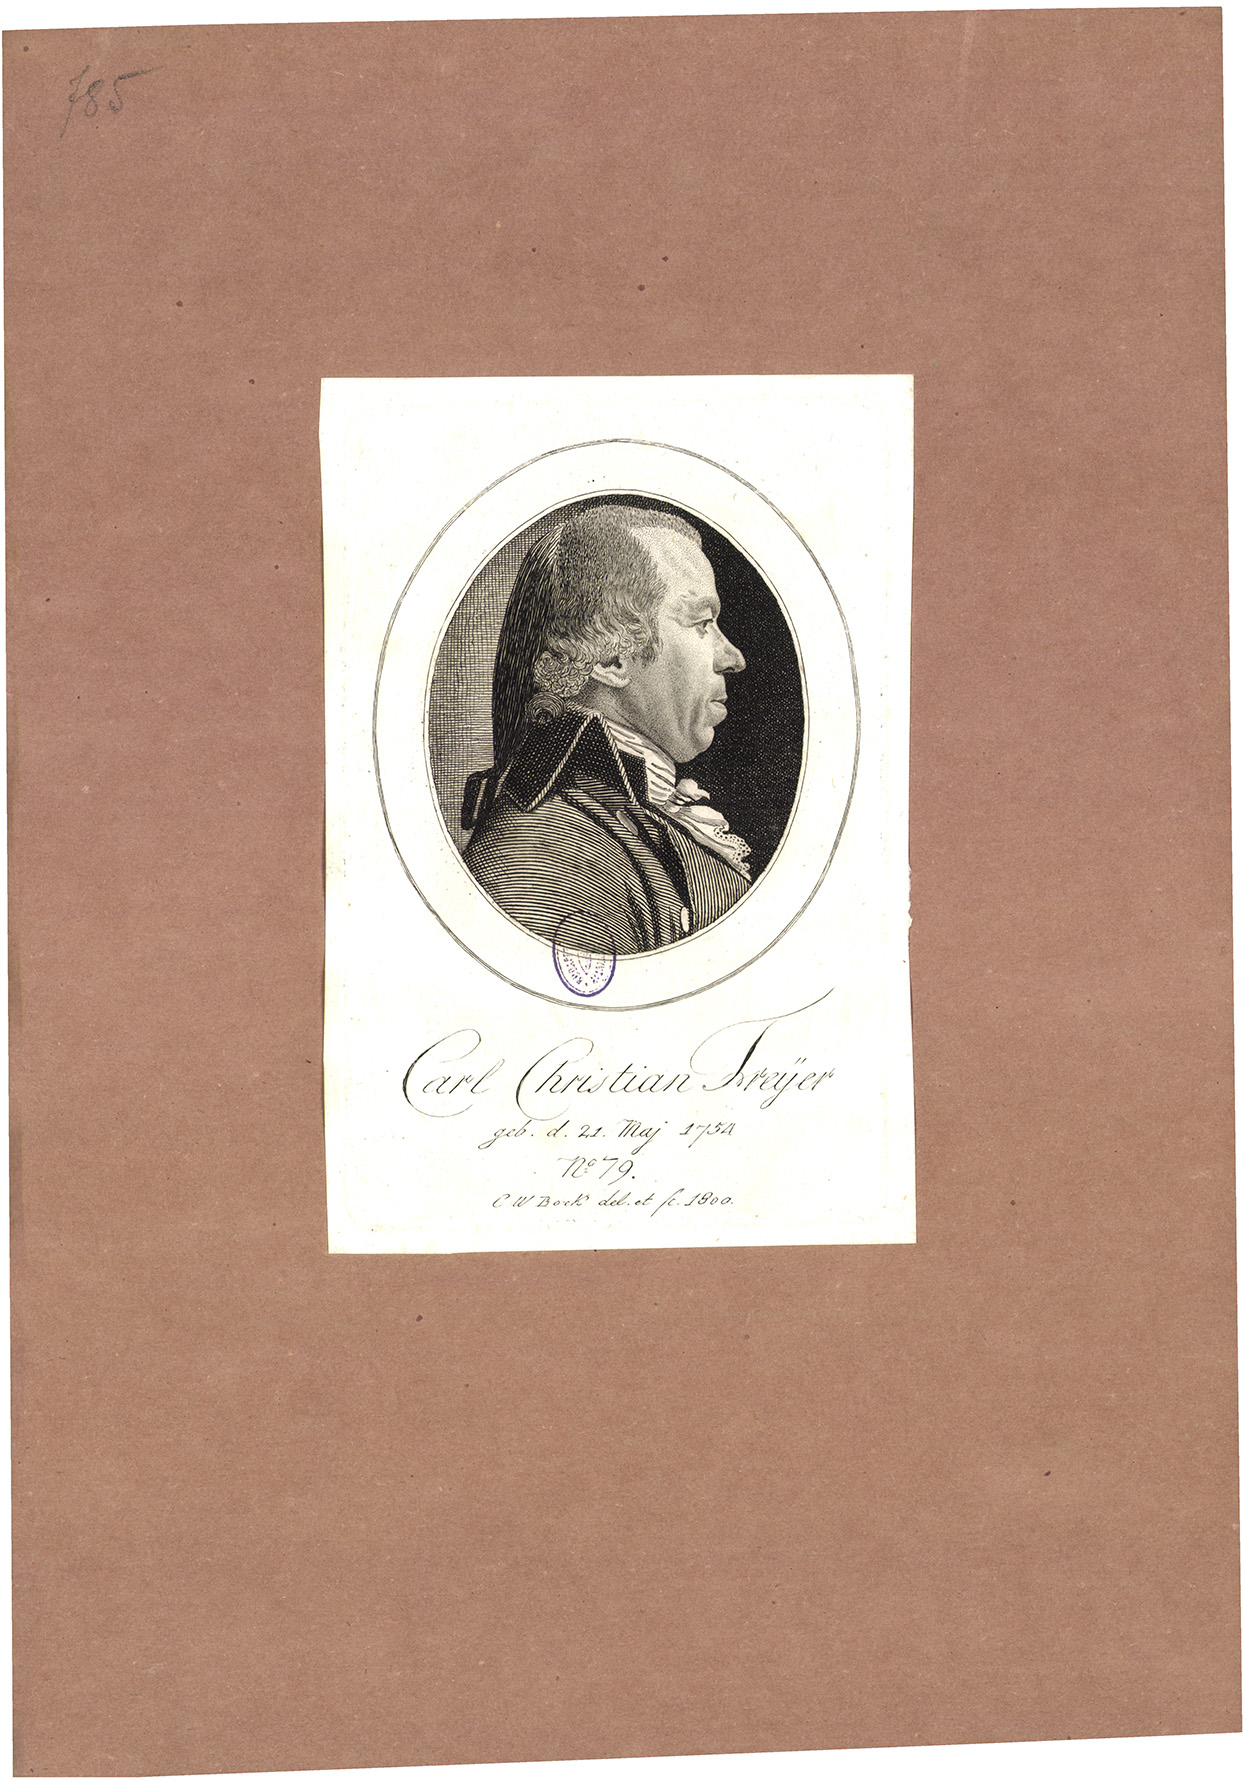 Carl Christian Freyer geb. d. 21. Maj 1754